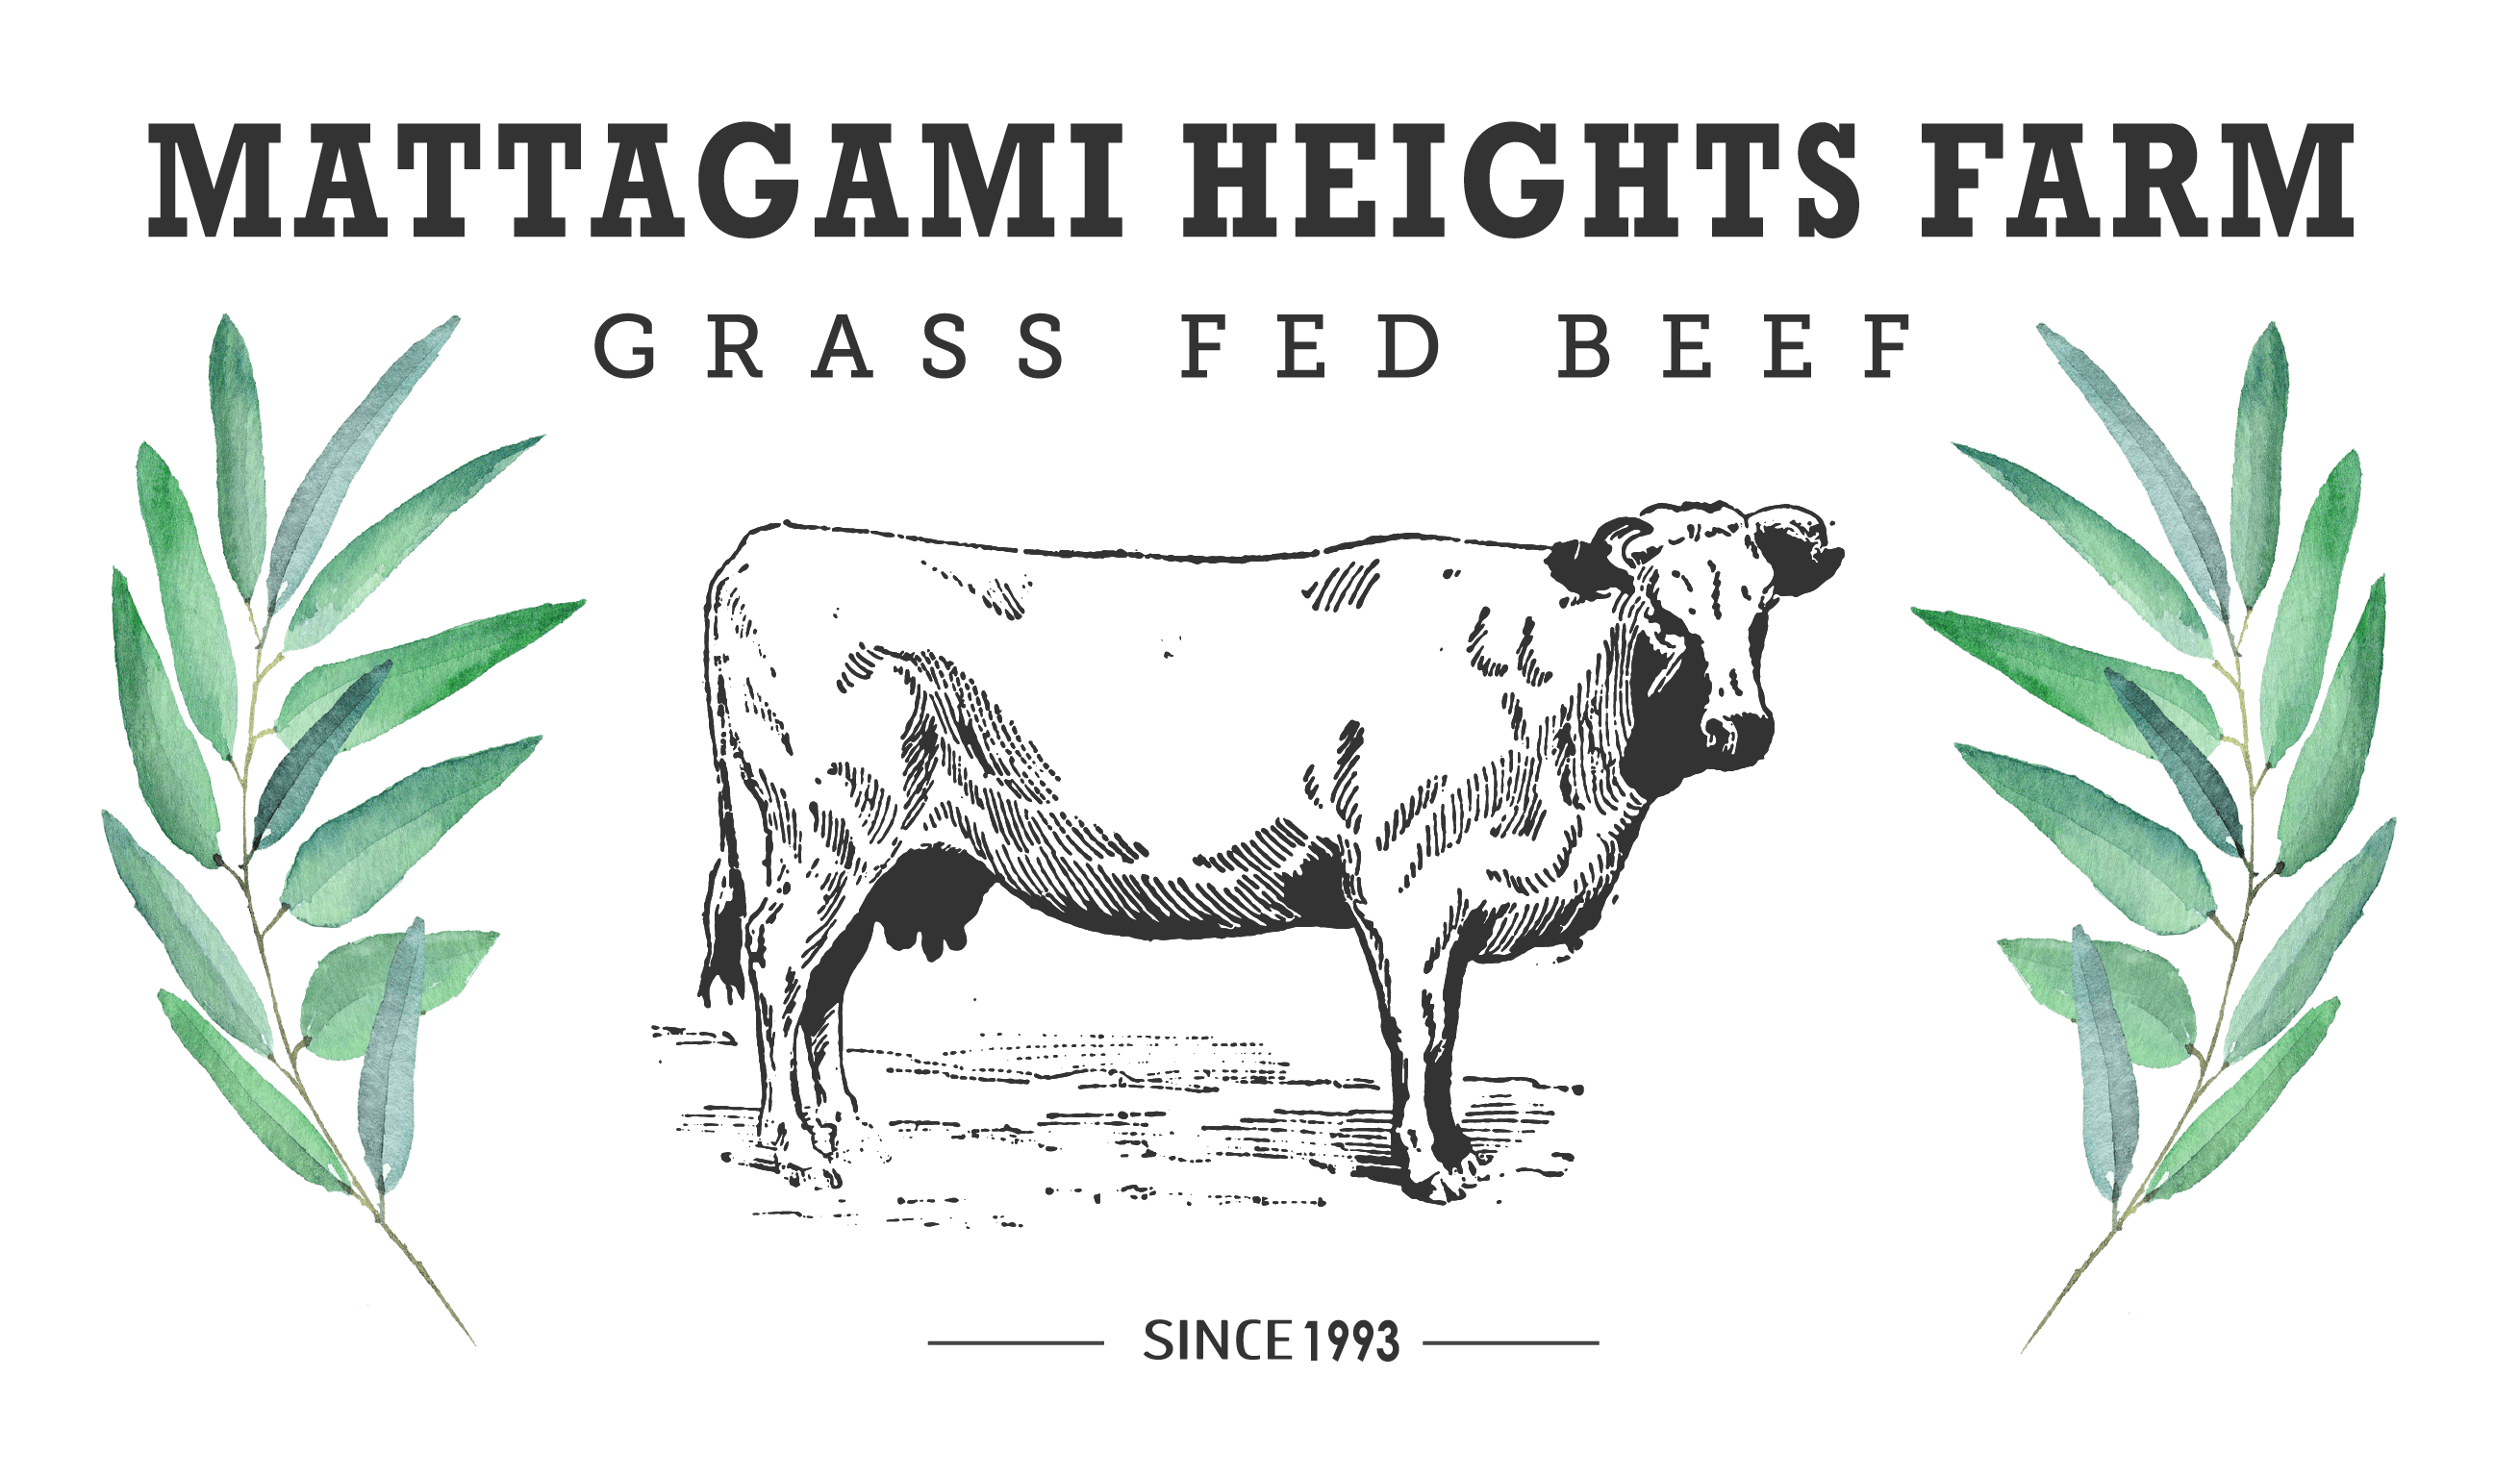 Mattagami Heights Farm